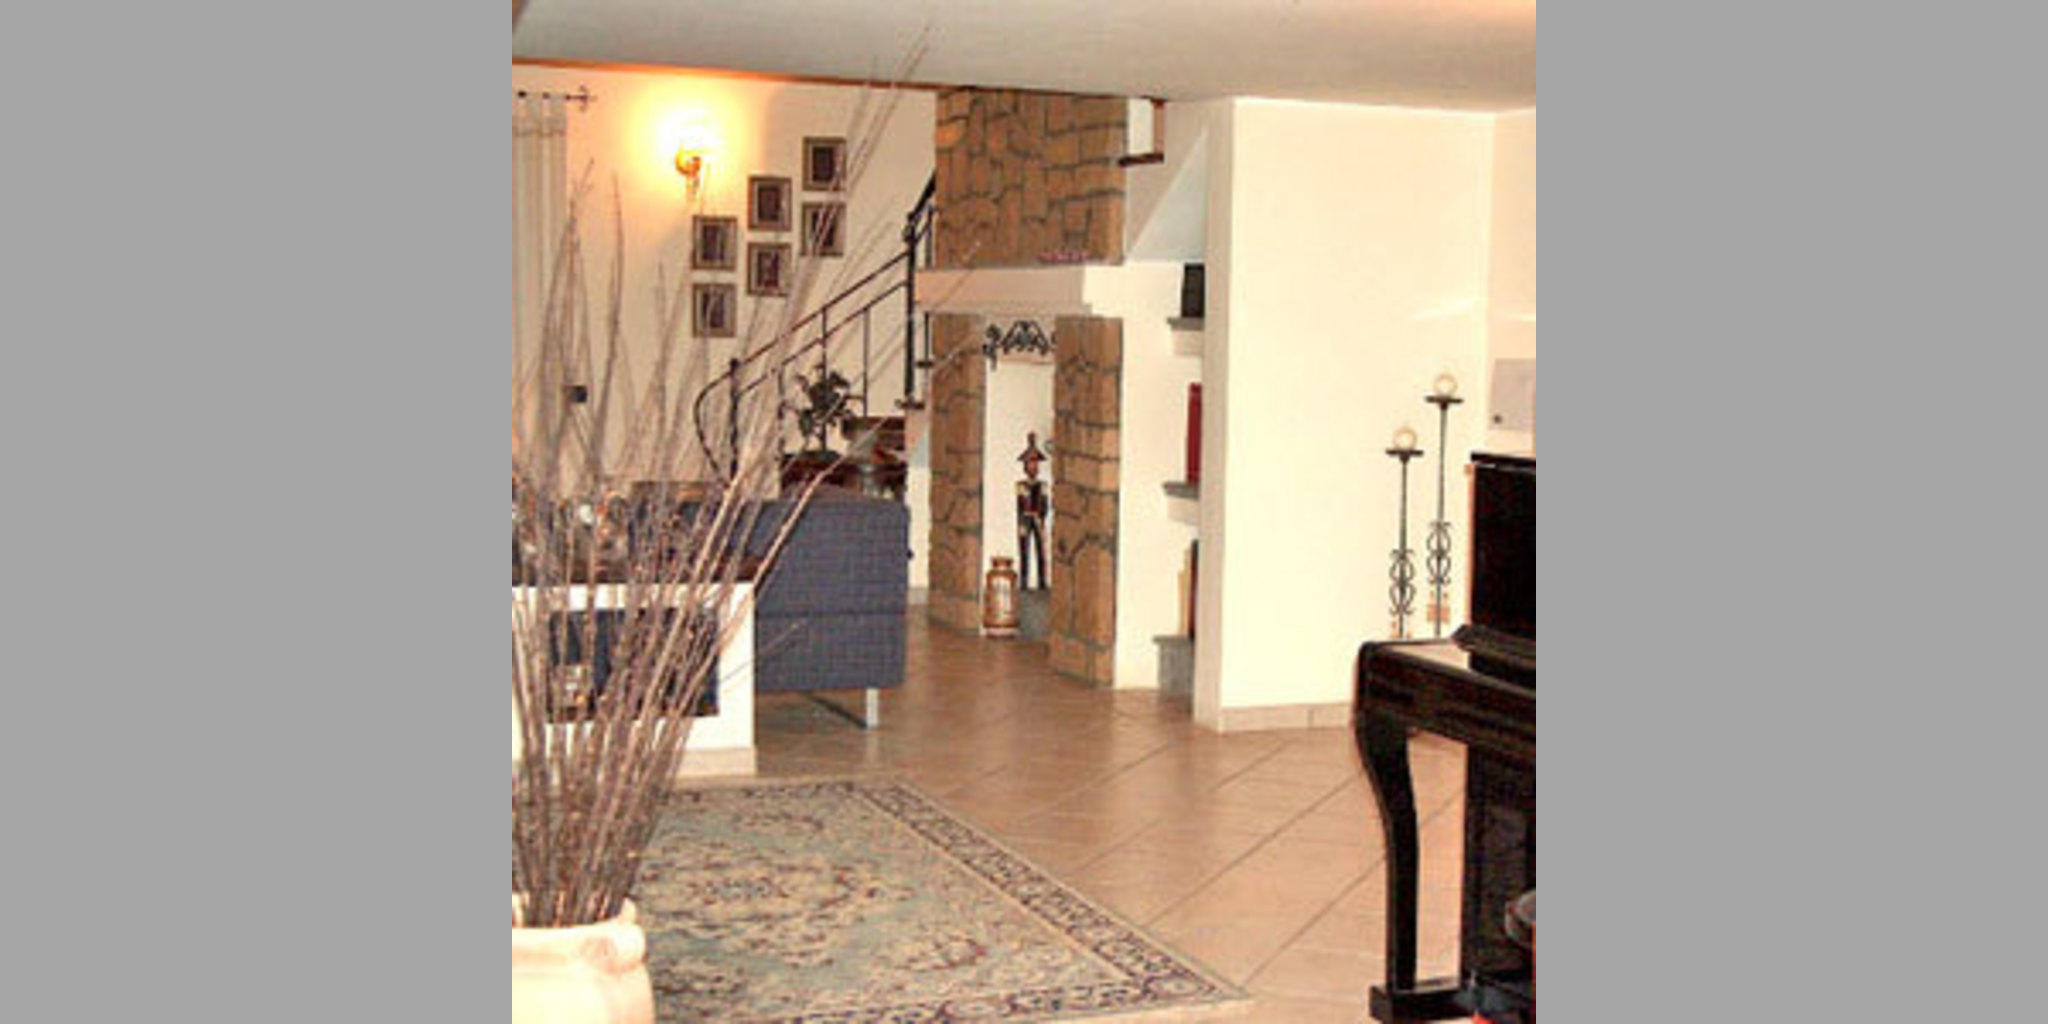 Bed & Breakfast Civitella D'Agliano - Poggetto